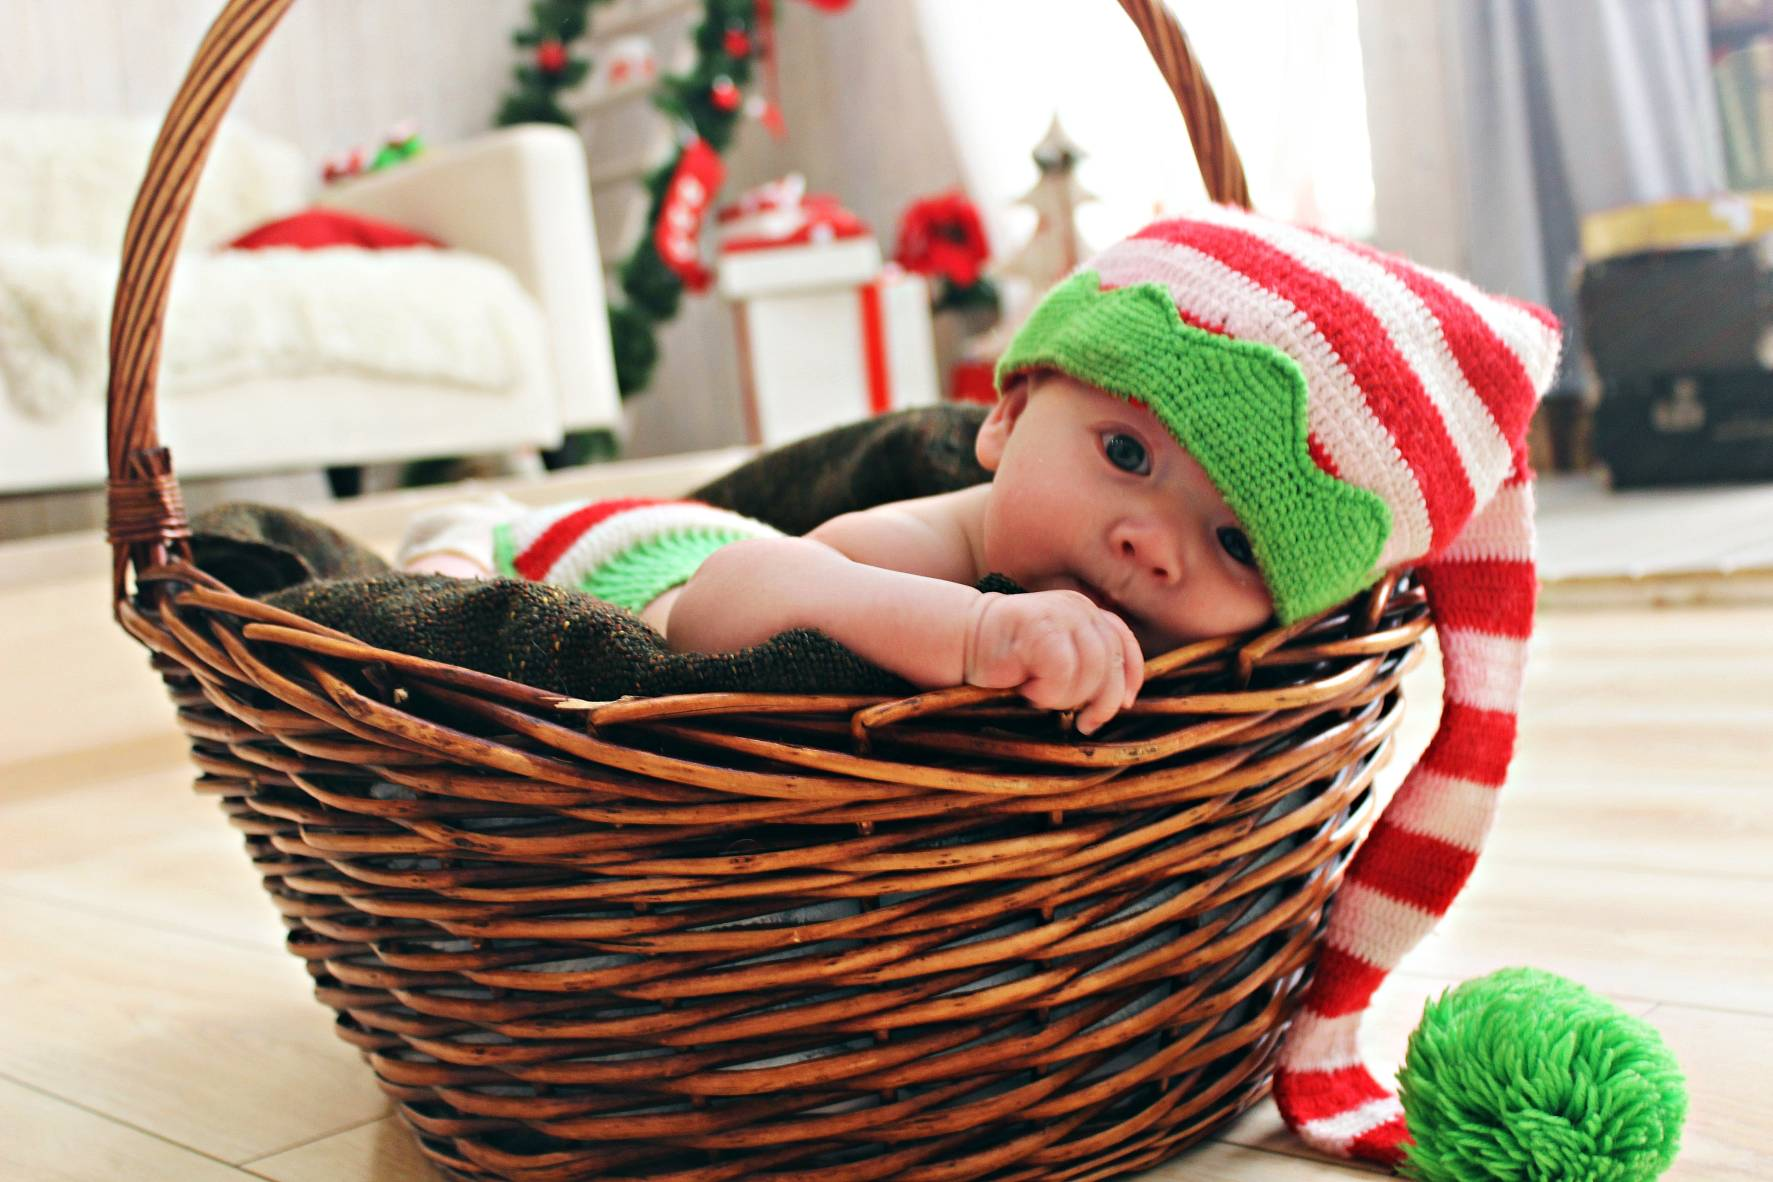 adorable-baby-basket-265981 (1)